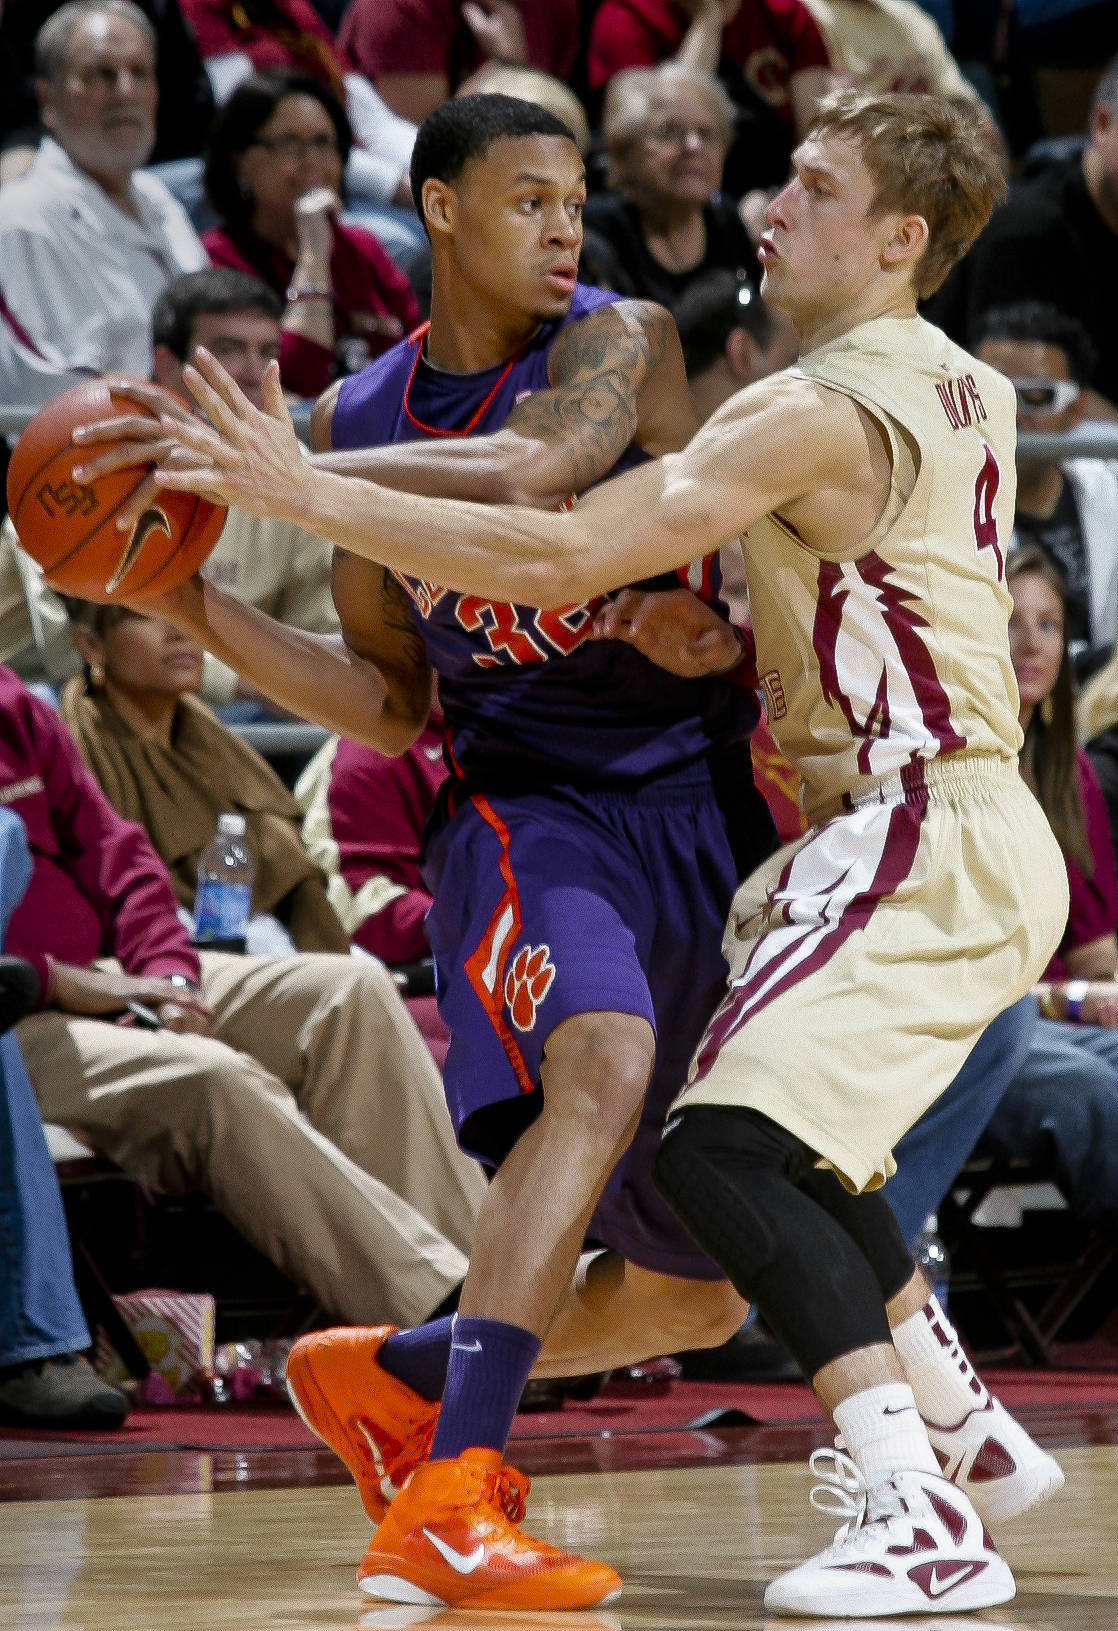 Clemson guard K.J. McDaniels (32) is pressured by Florida State's Deividas Dulkys (4) in the second half. (AP Photo/Phil Sears)